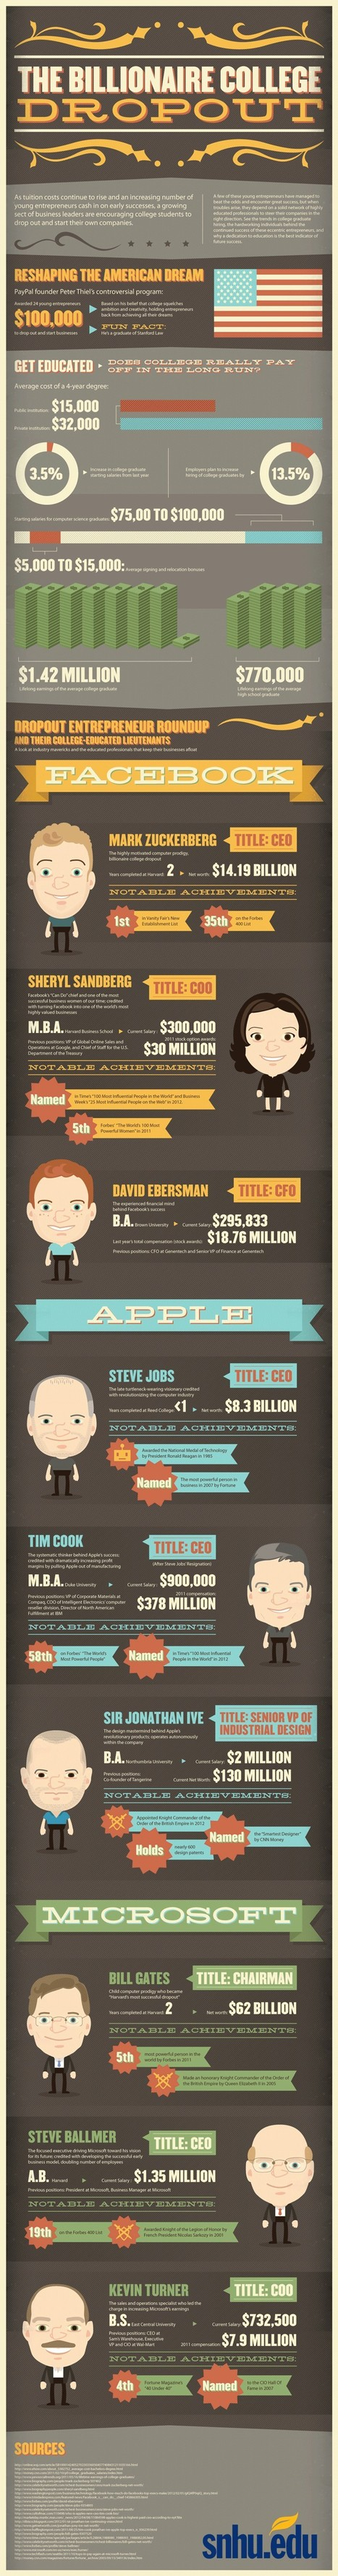 Top 10 College Dropout Tech Billionaire Business | All Infographics | All Infographics | Scoop.it